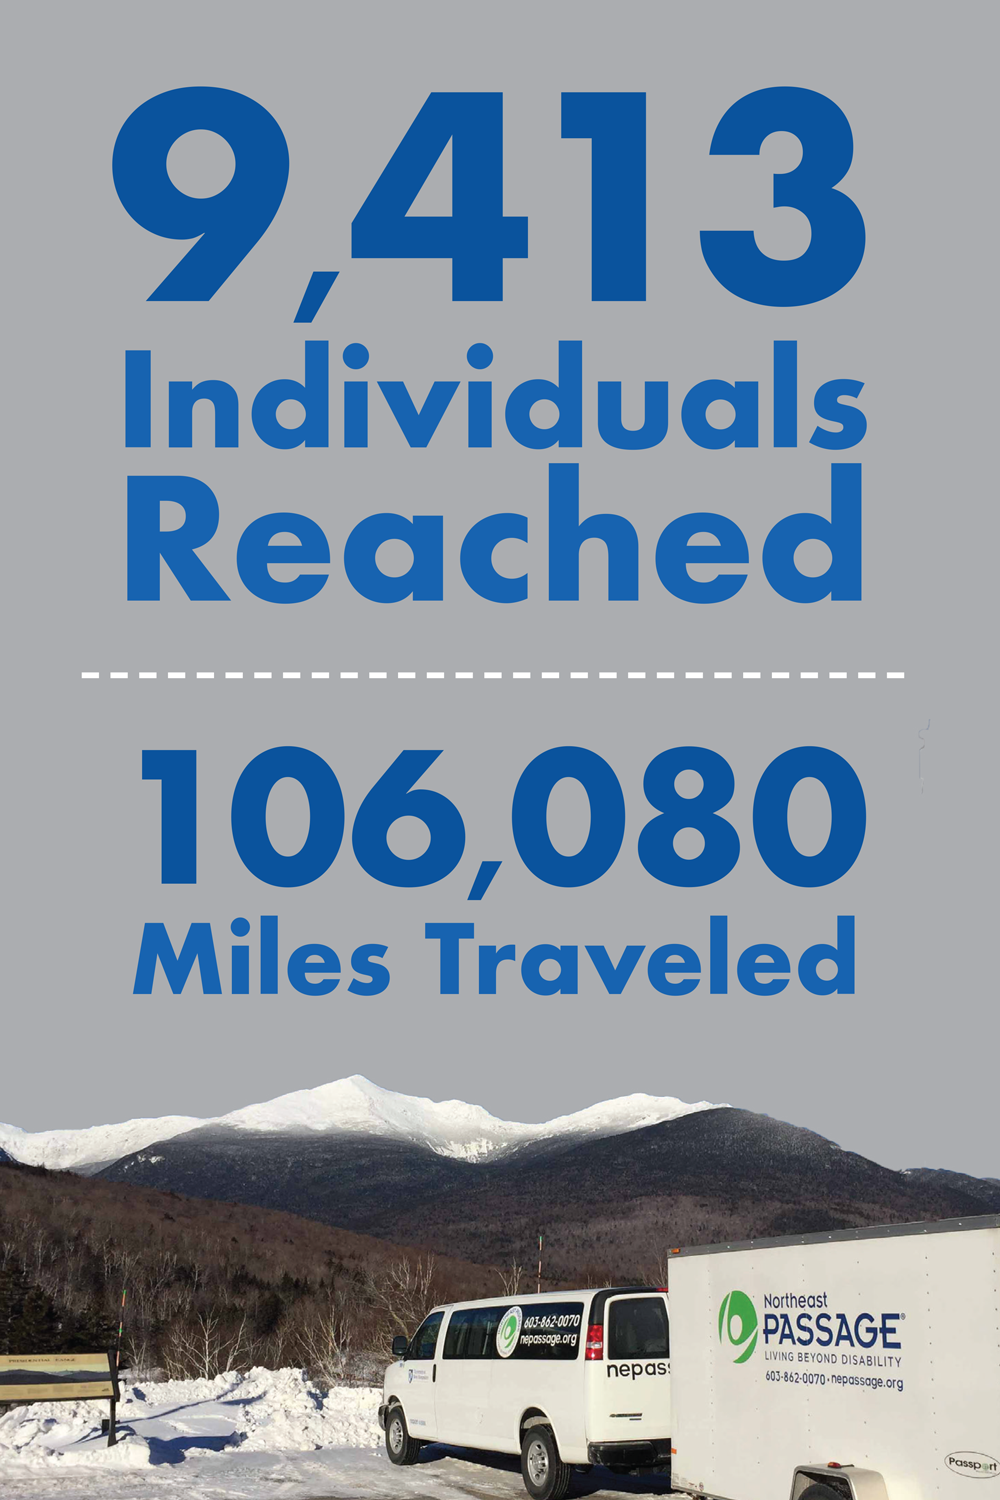 9413 individuals reached and 106,080 miles traveled